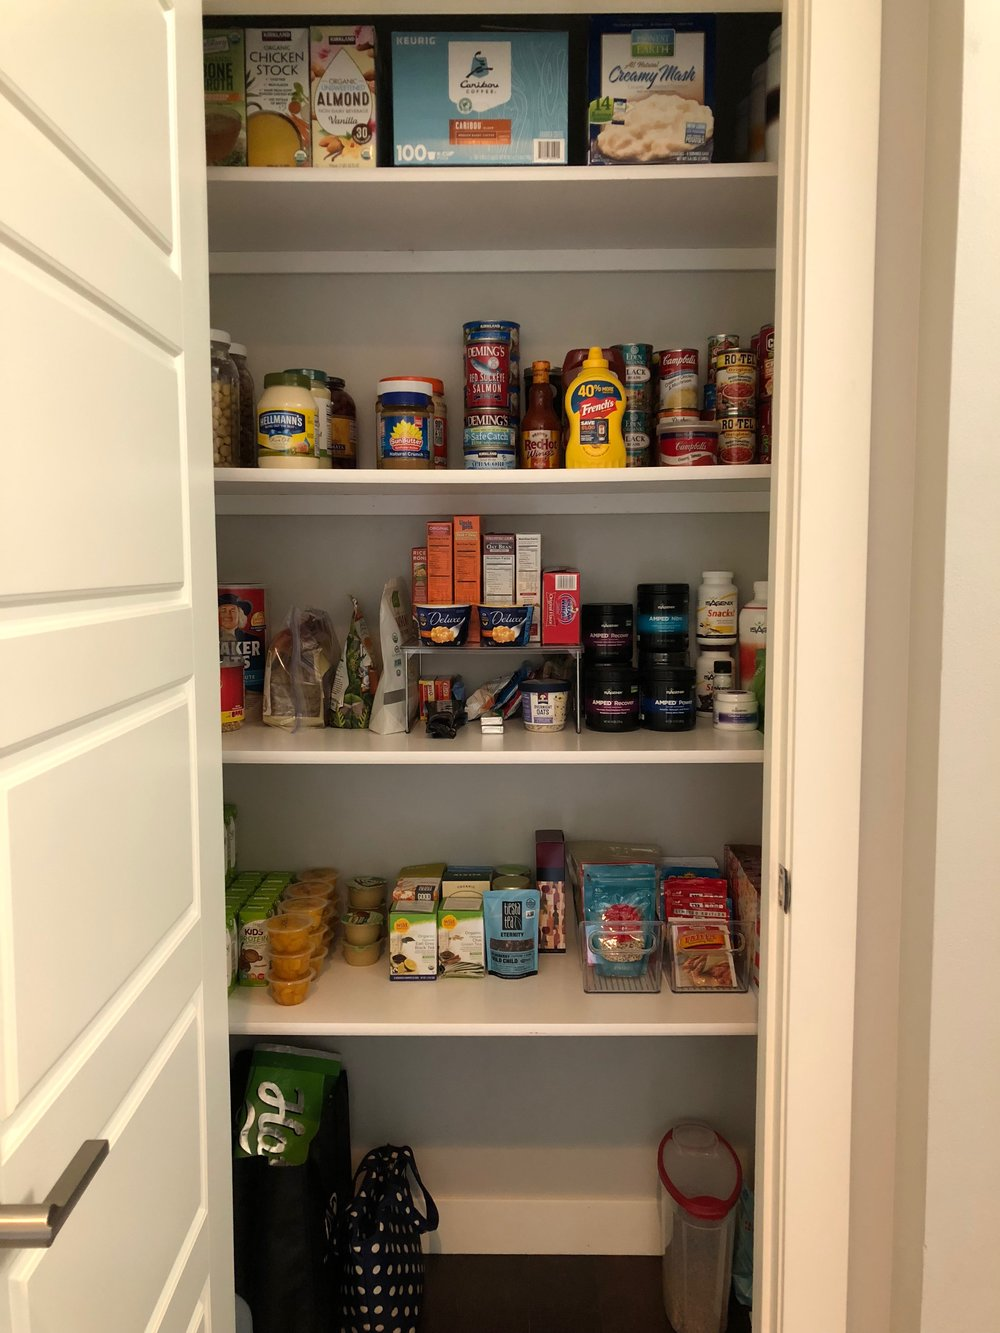 AFTER - An organized pantry makes it easier to see what you all have.  This prevents you from buying doubles!